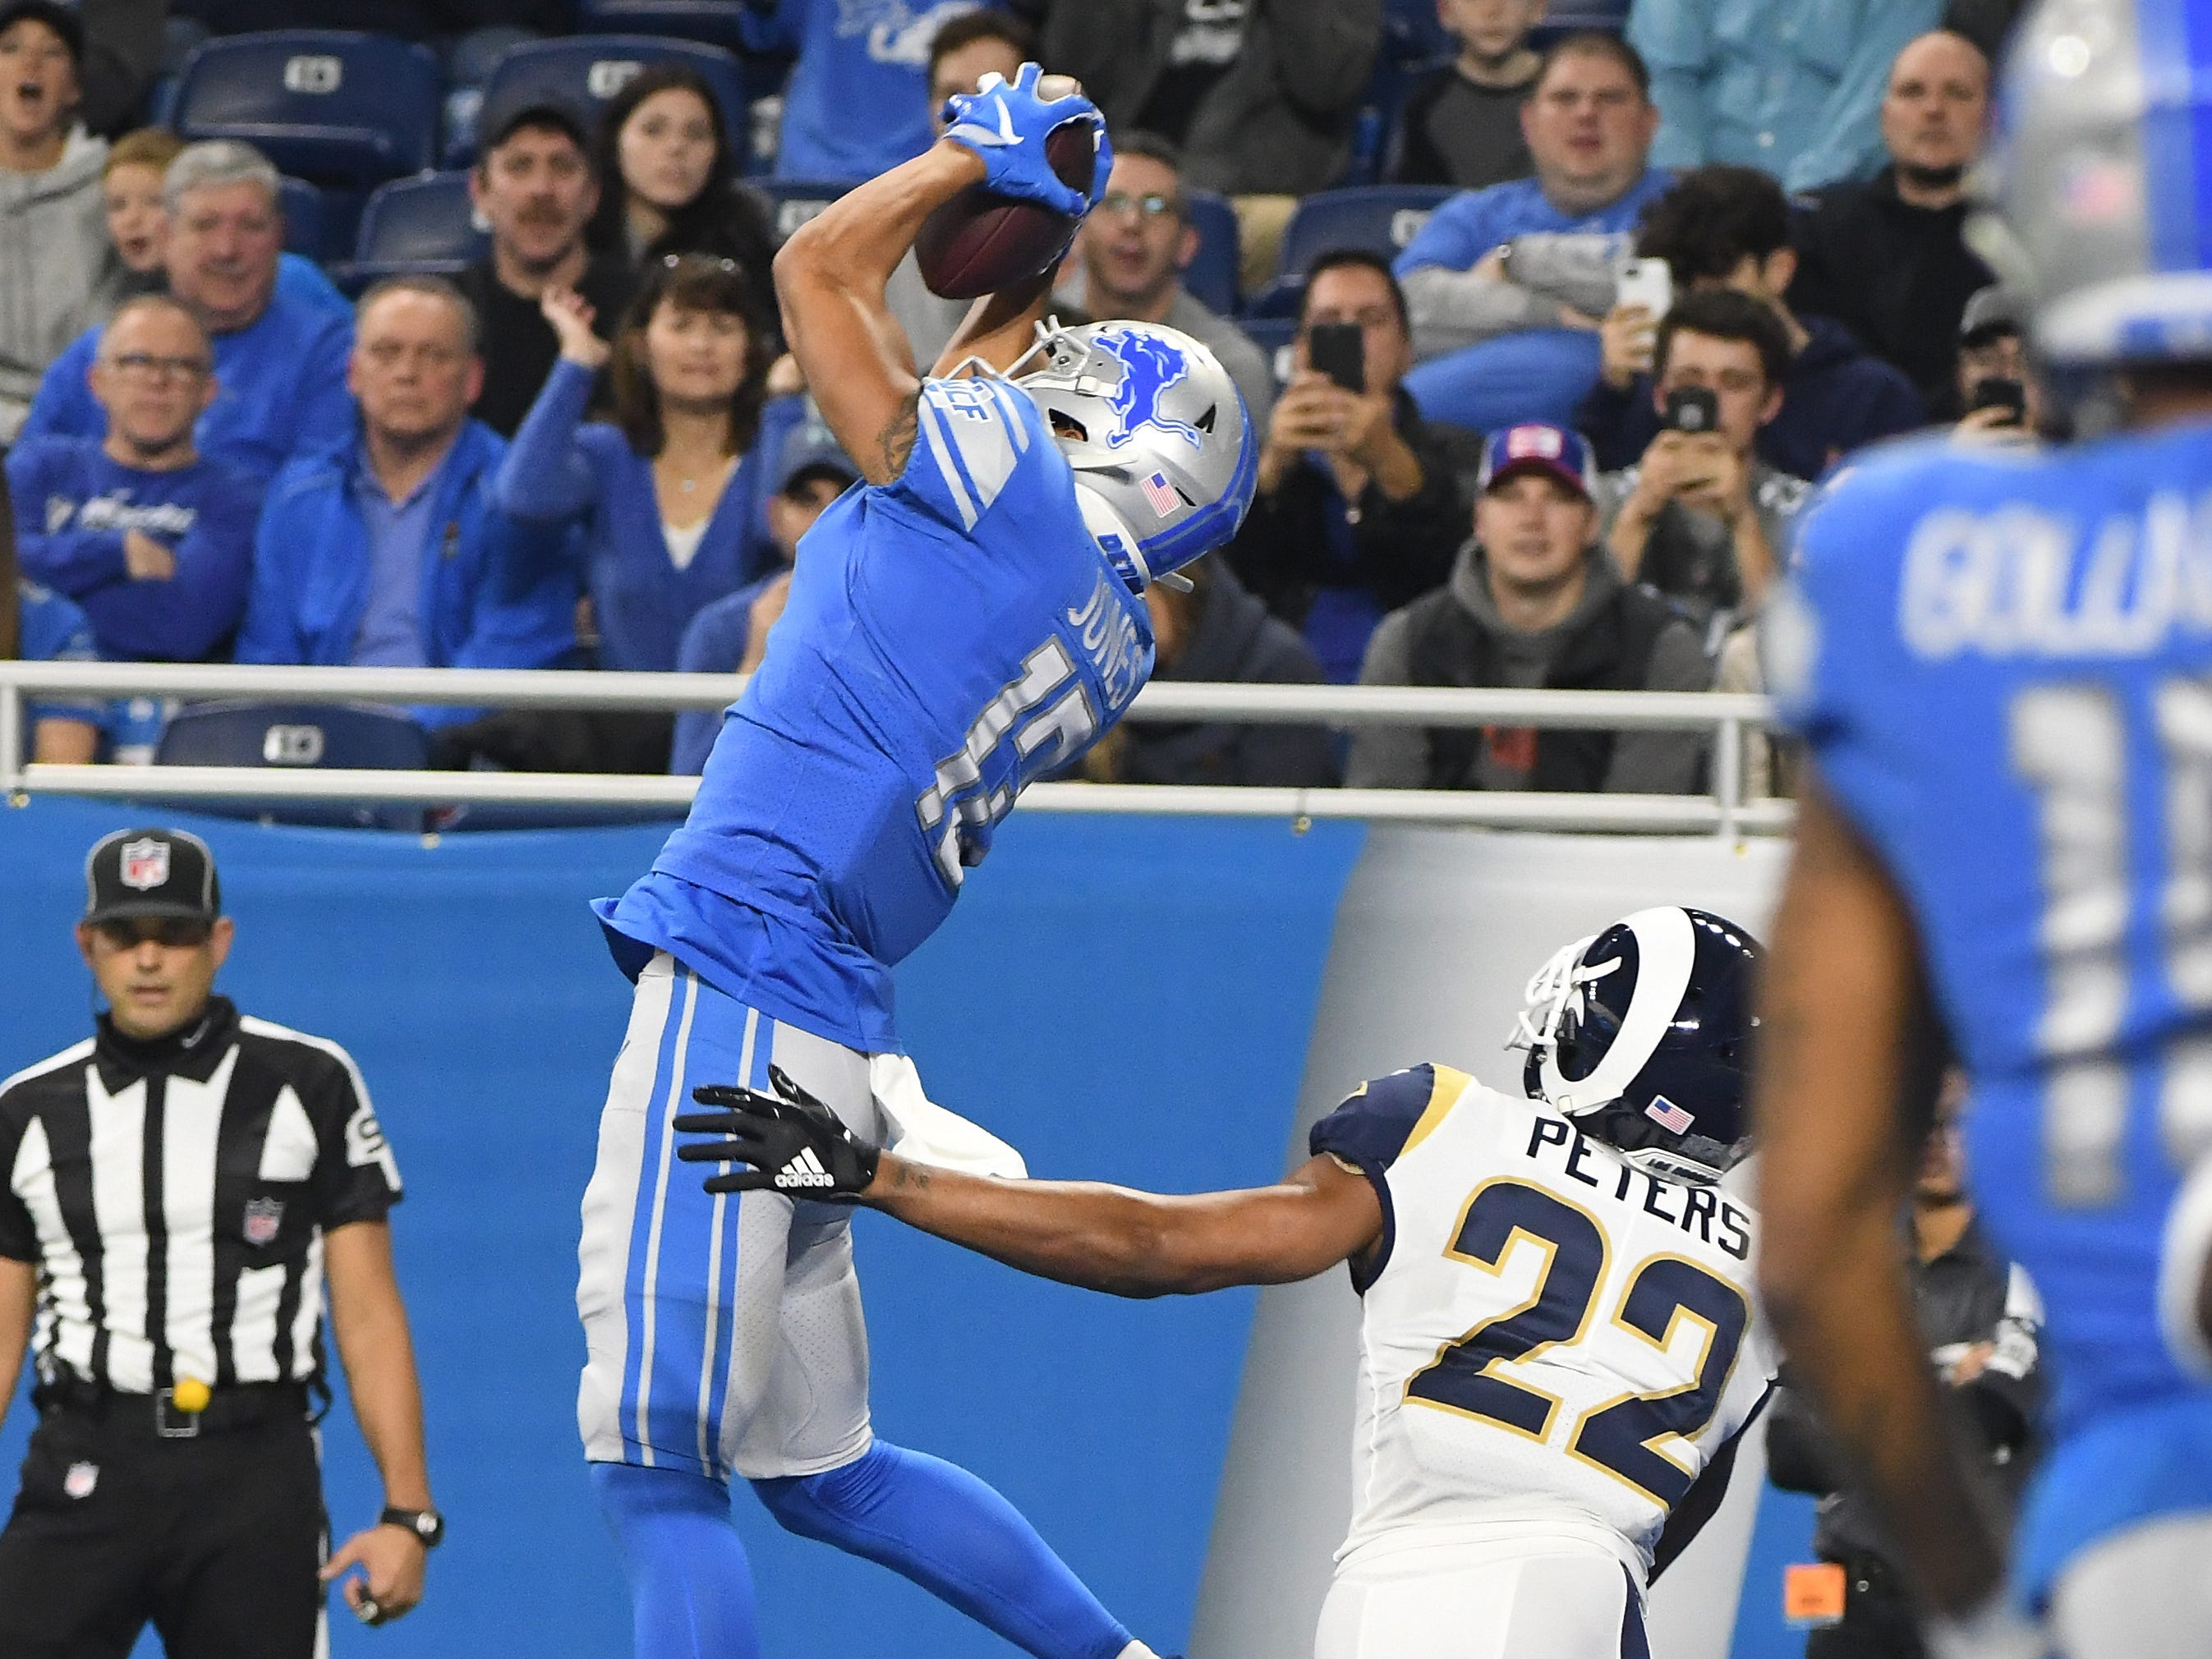 Lions' T.J. Jones pulls in a reception in front of Rams' Marcus Peters but is is waved off on an offensive interference call on Jones in the third quarter.